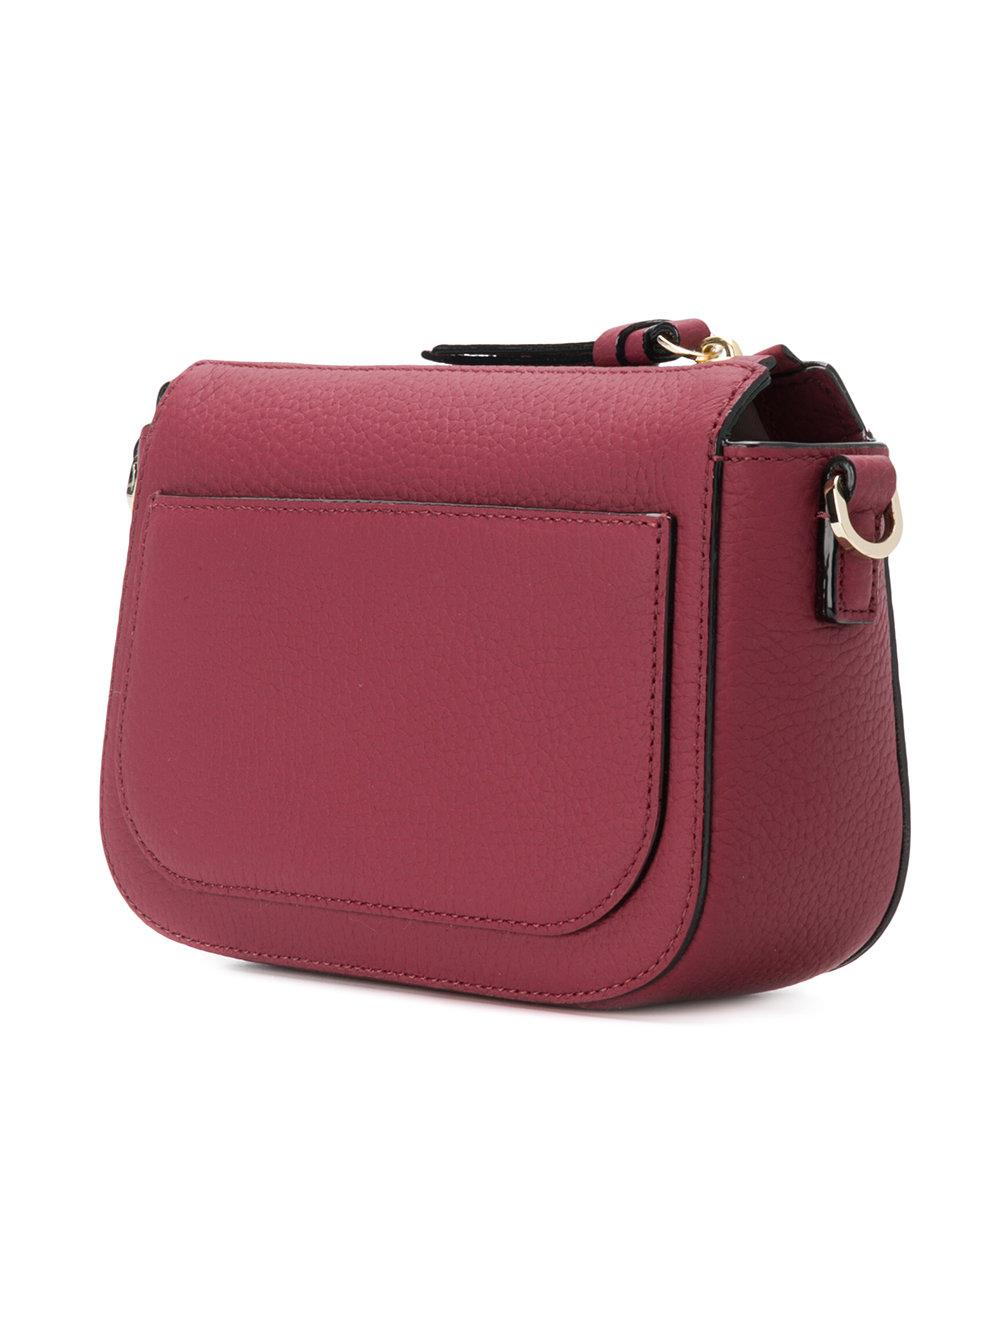 Kate Spade Leather Wendi Crossbody Bag in Red